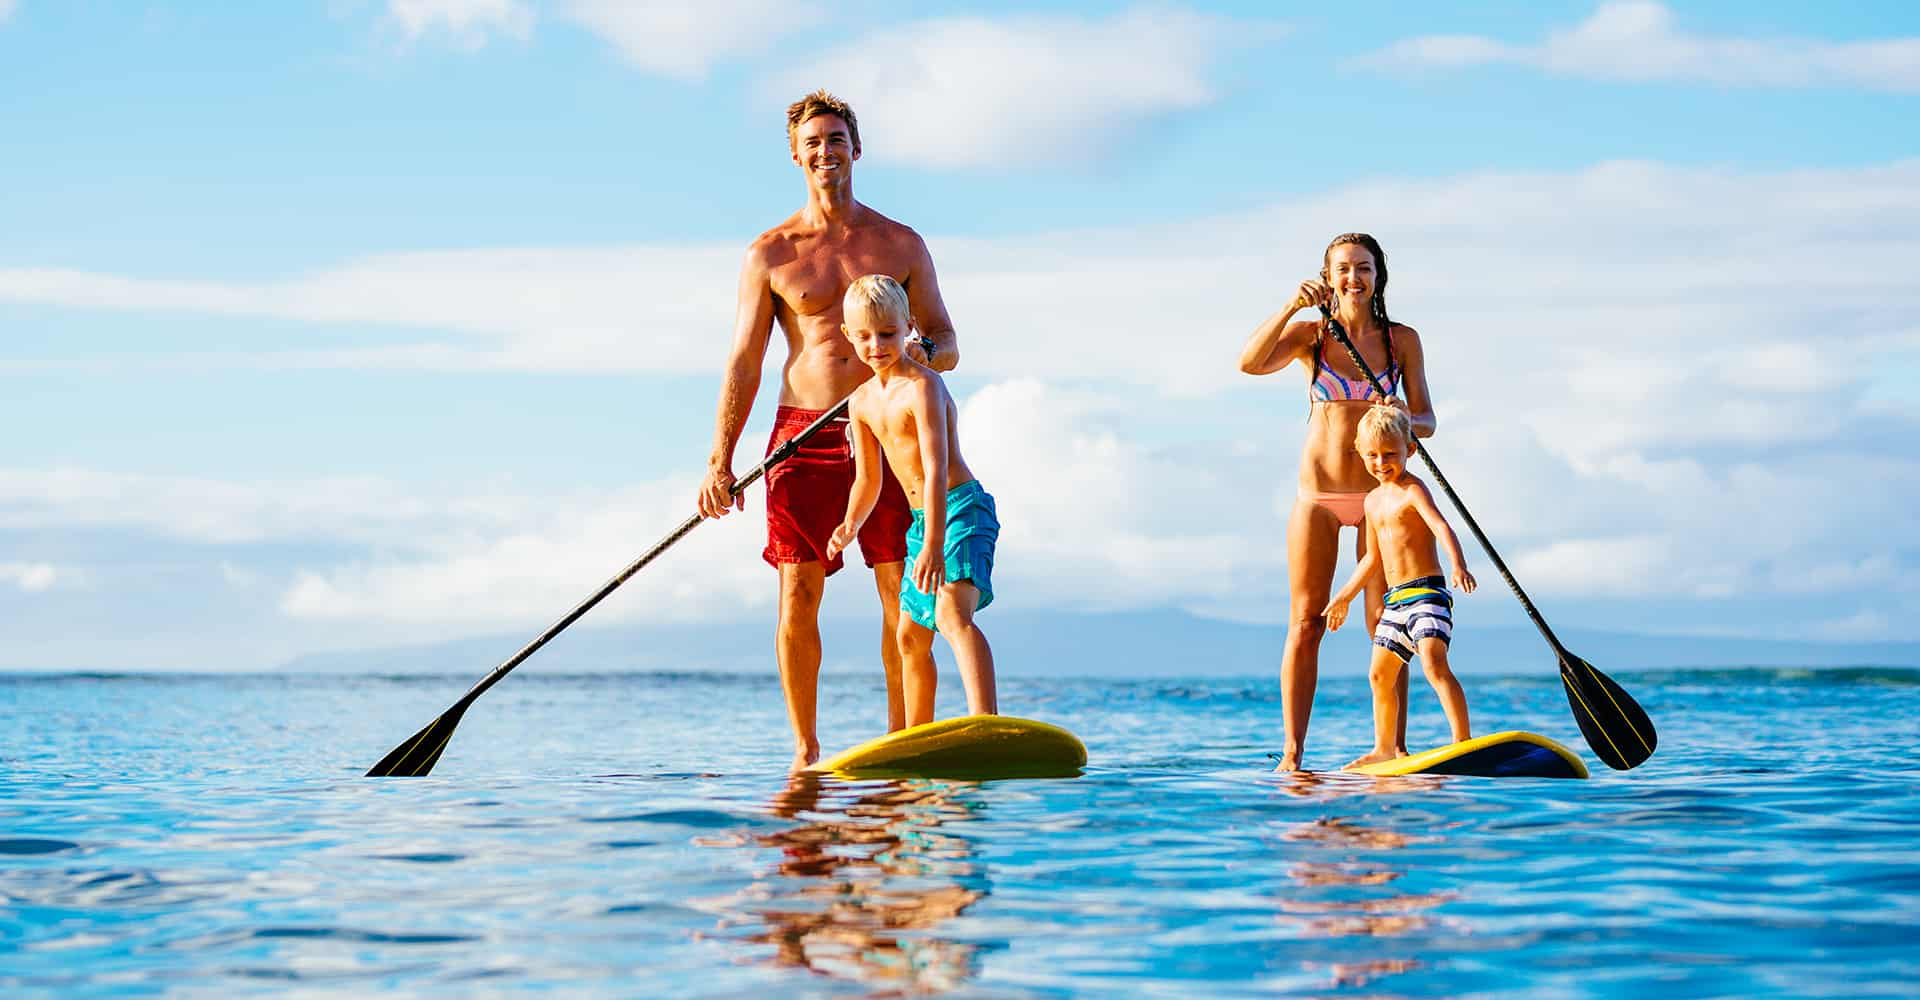 stand-up-paddle-boarding-for-beginners